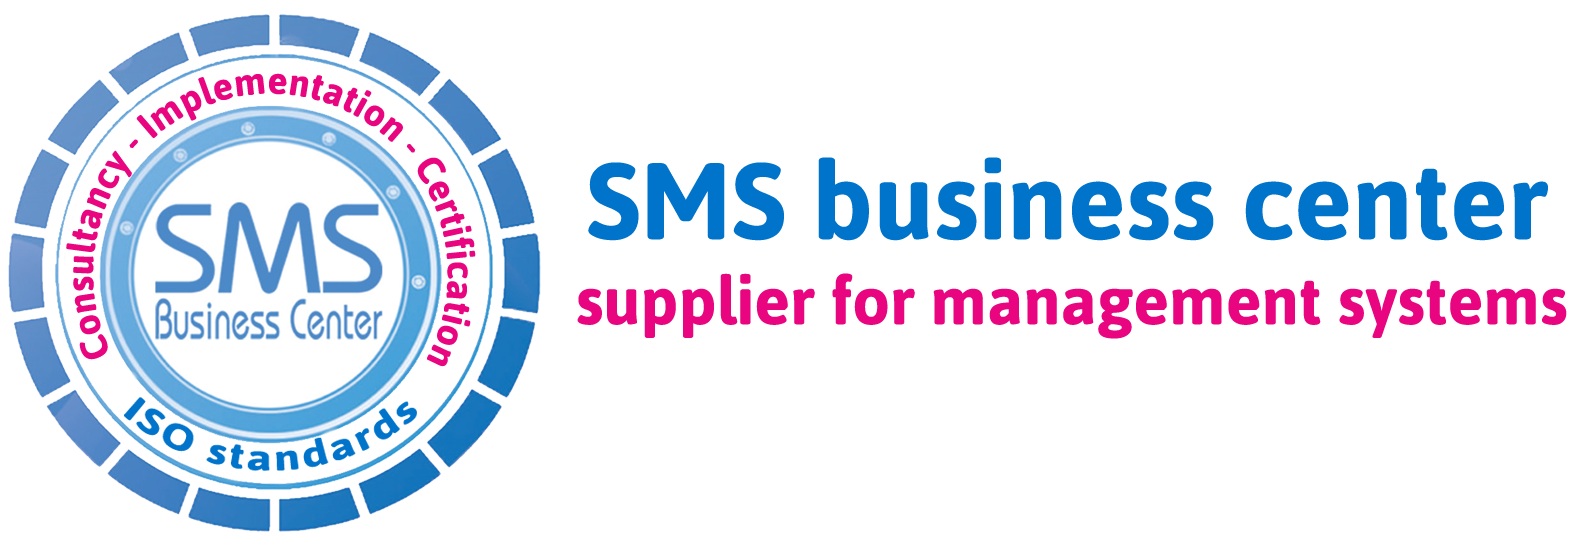 Consultanta certificare ISO - SMS Business Center